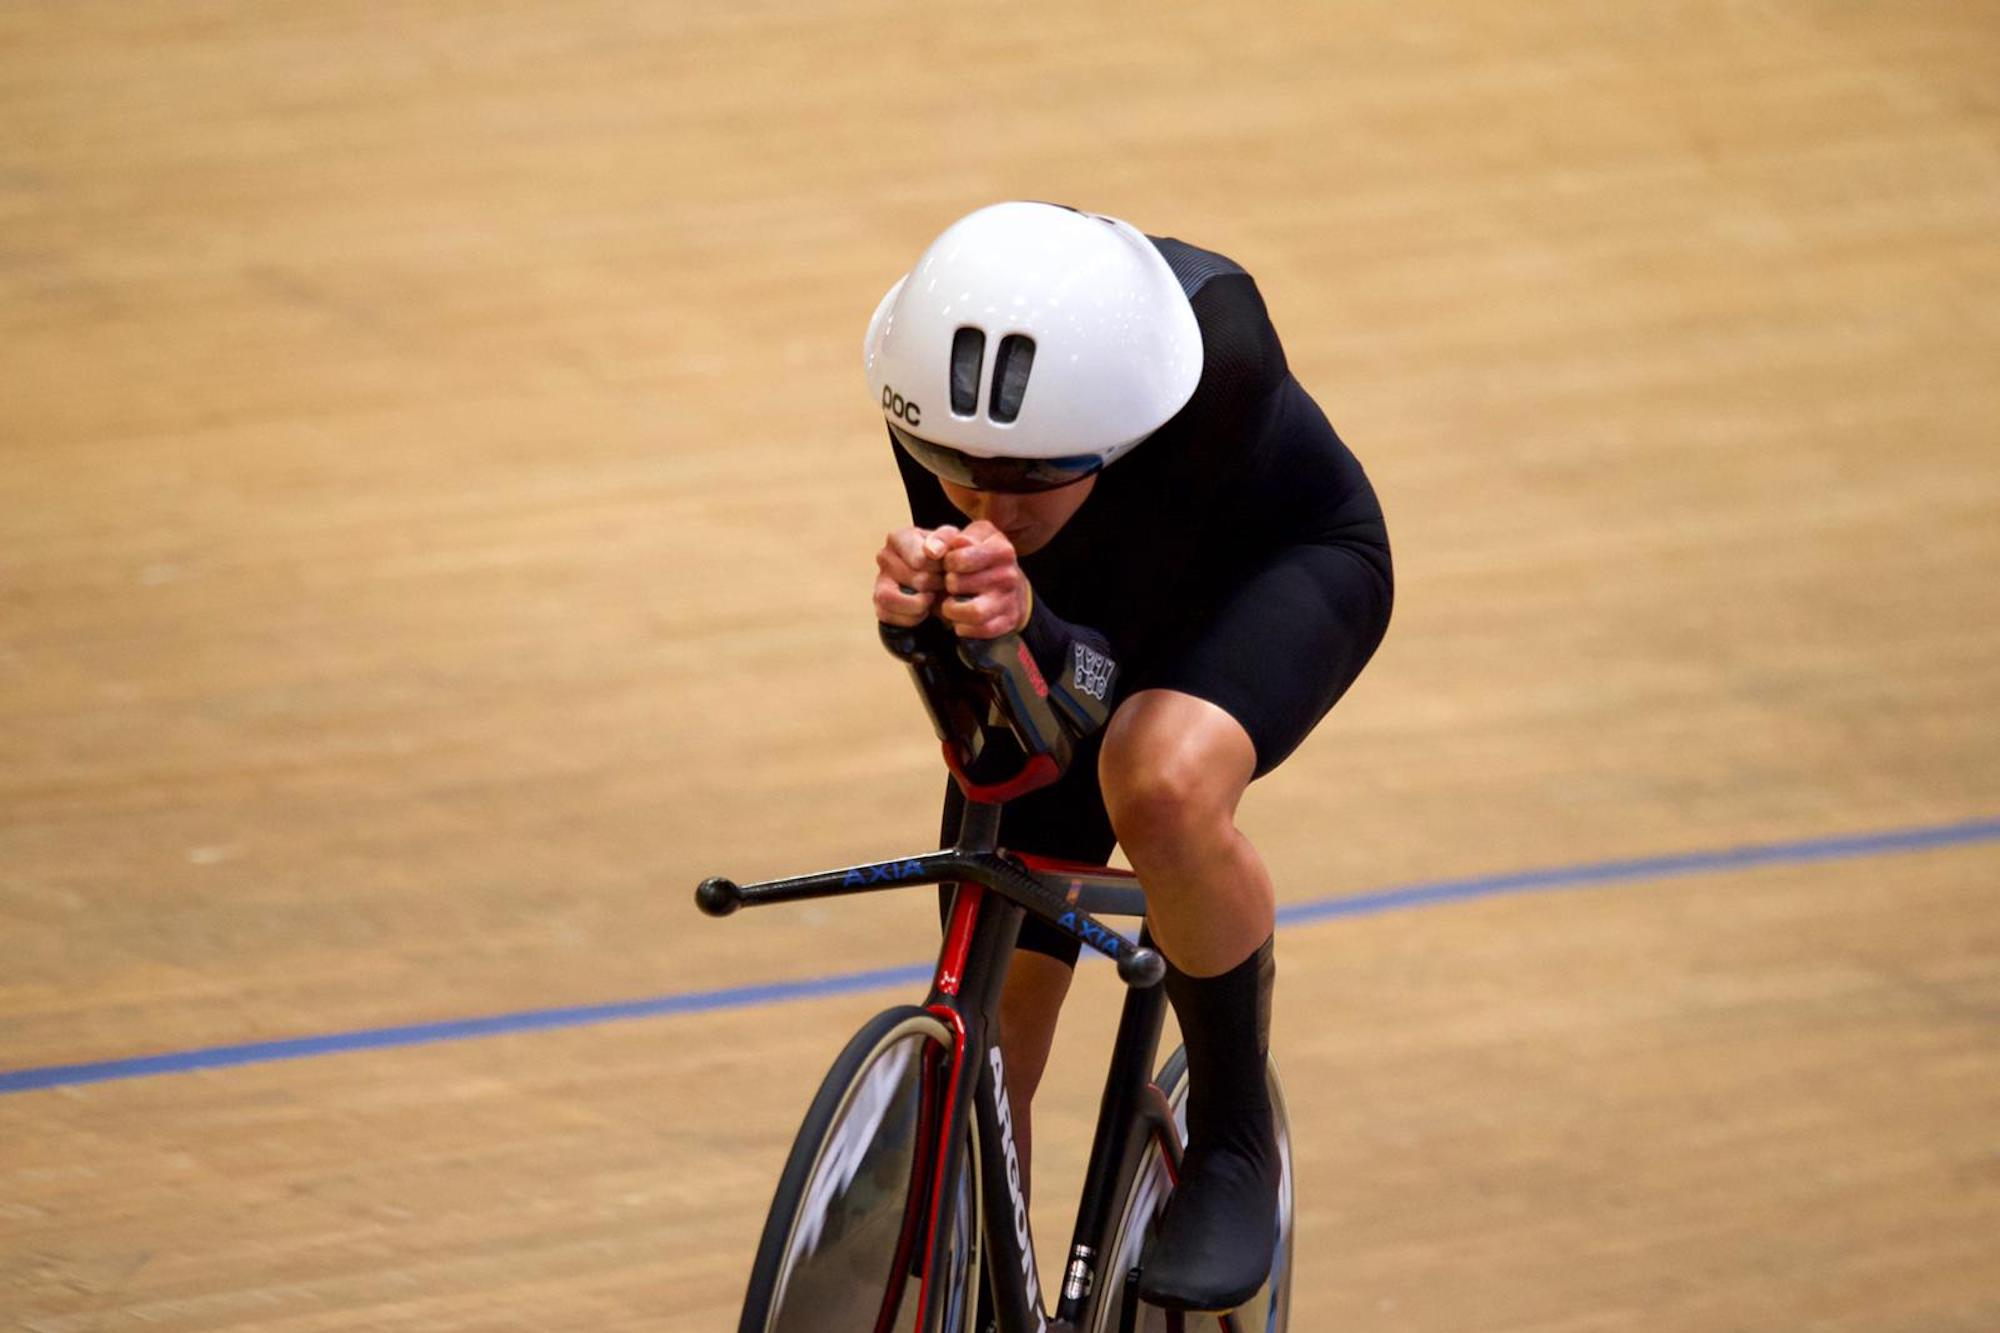 Joss Lowden during her Hour Record